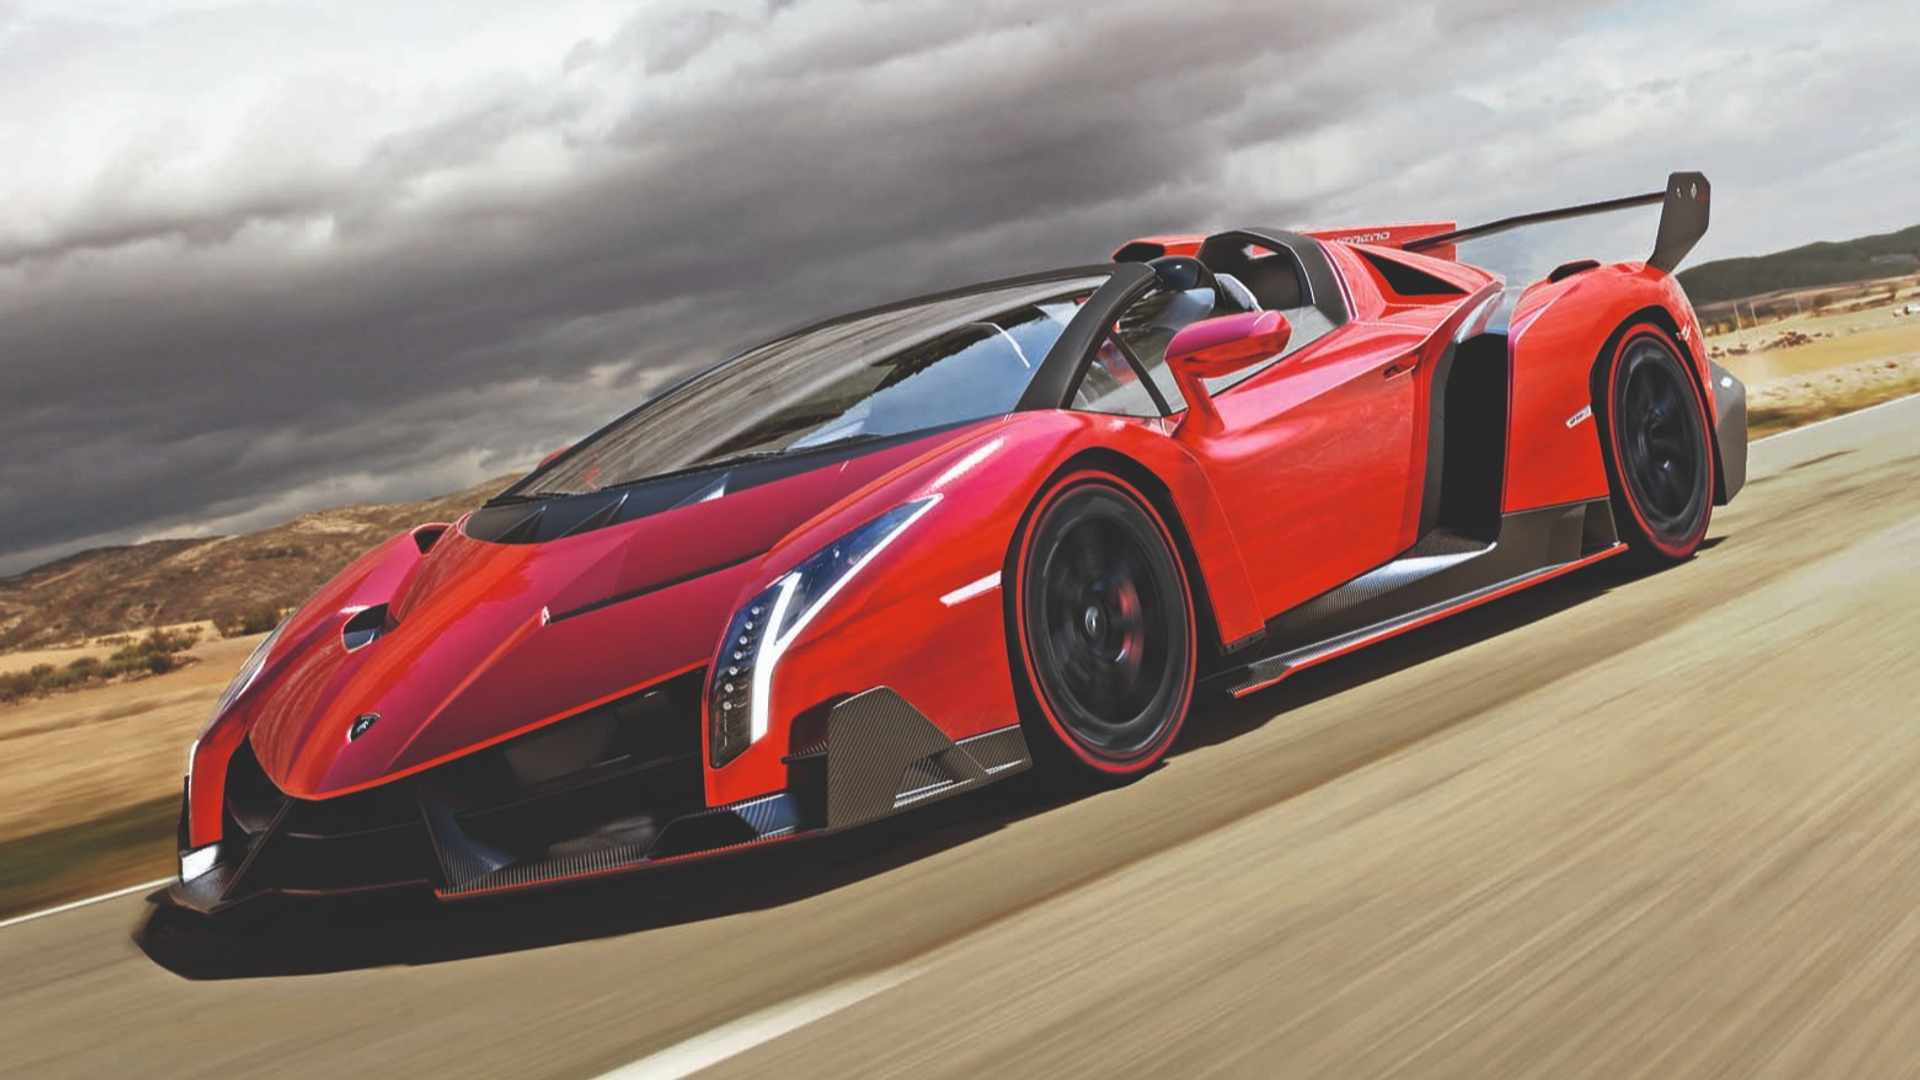 lamborghini might build a bonkers hypercar to rival the valkyrie